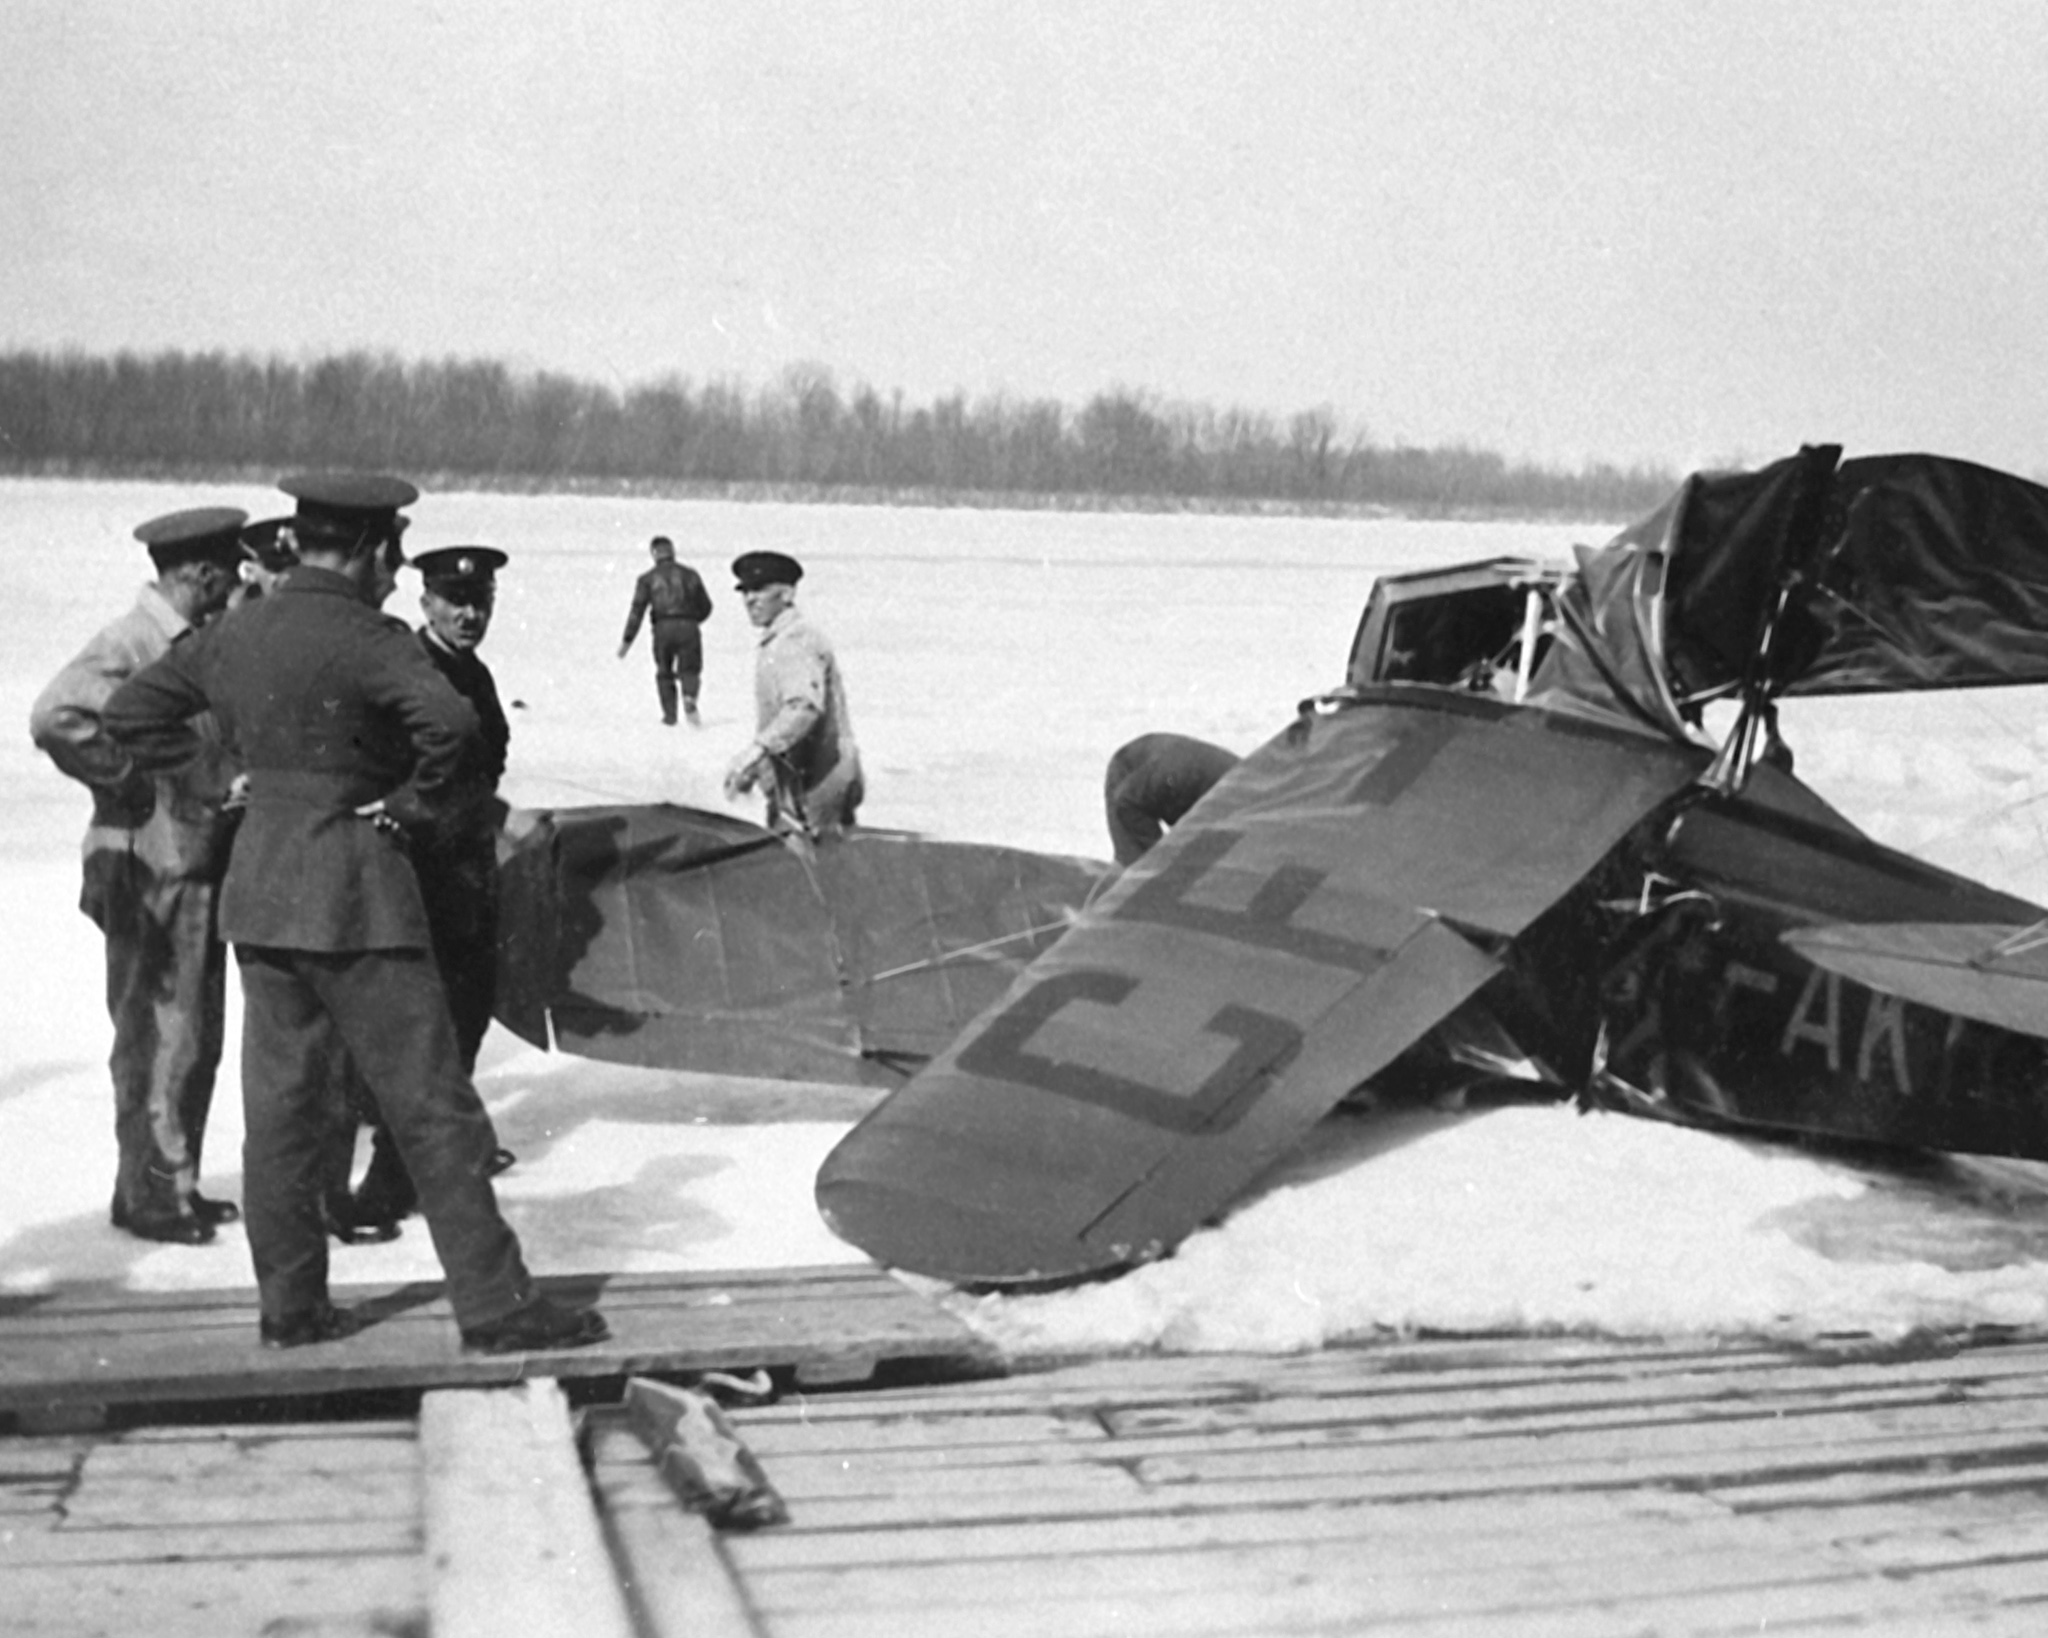 The wreckage of Fairchild KR-21, CF-AKR, on the ice of the Ottawa River on March 12, 1930. Wing Commander (retired) William Barker died in the crash. PHOTO: DND Archives, RE74-166